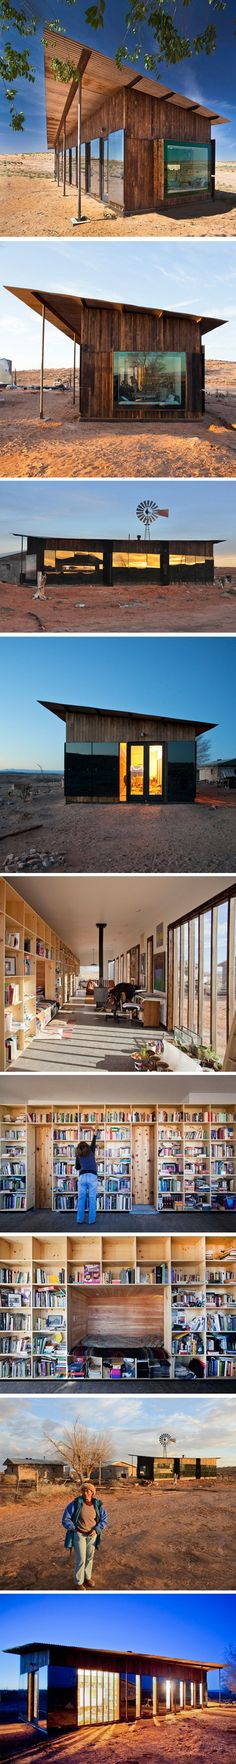 Not so tiny, but a lot of these ideas could be adapted to tiny house living. ========================== Nakai House par des étudiants en architecture - Journal du Design, note bed behind bookcases Residential Architecture, Interior Architecture, Architecture Journal, Eco Friendly House, Prefab Homes, Tiny House, House 2, Exterior, House Styles